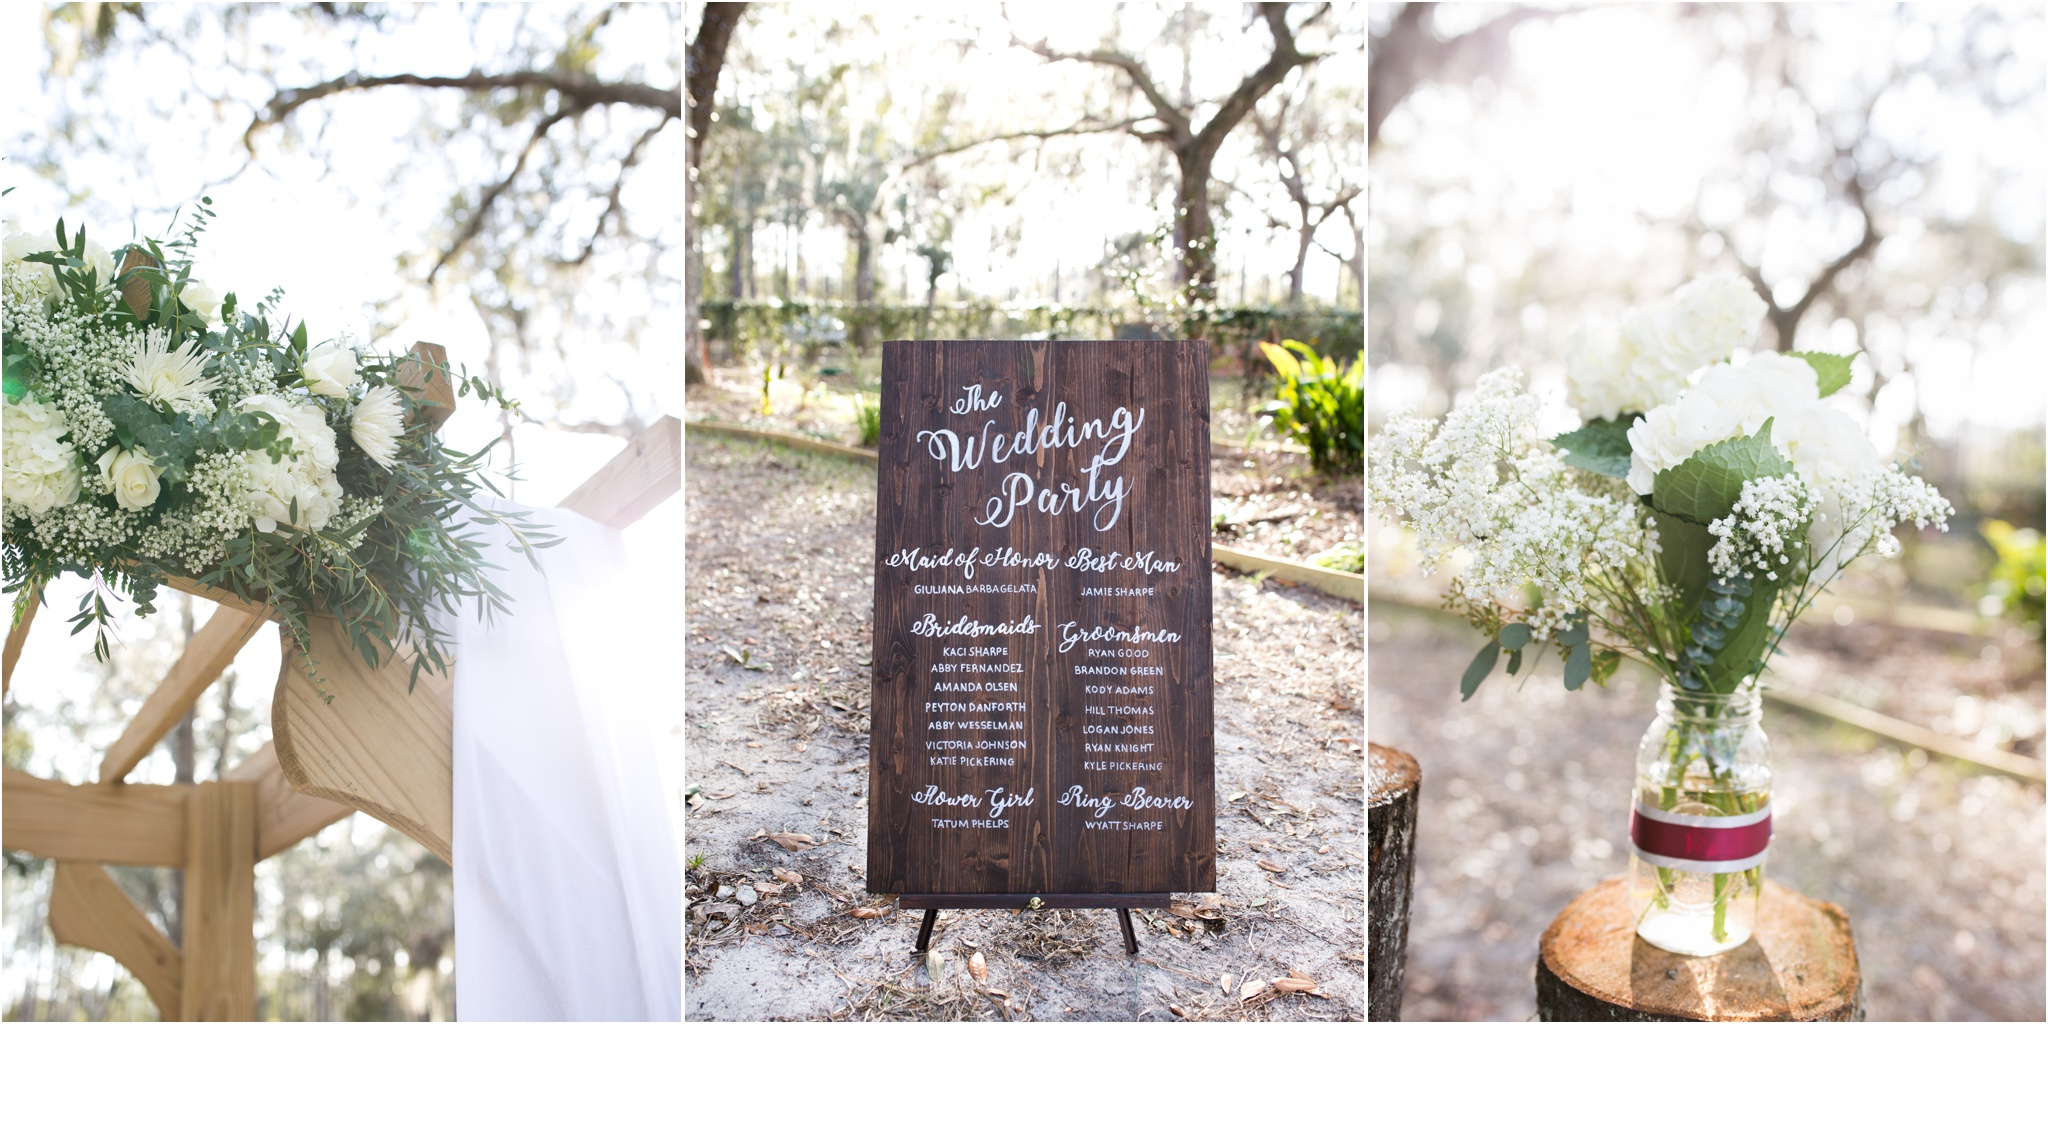 Rainey_Gregg_Photography_St._Simons_Island_Georgia_California_Wedding_Portrait_Photography_0523.jpg